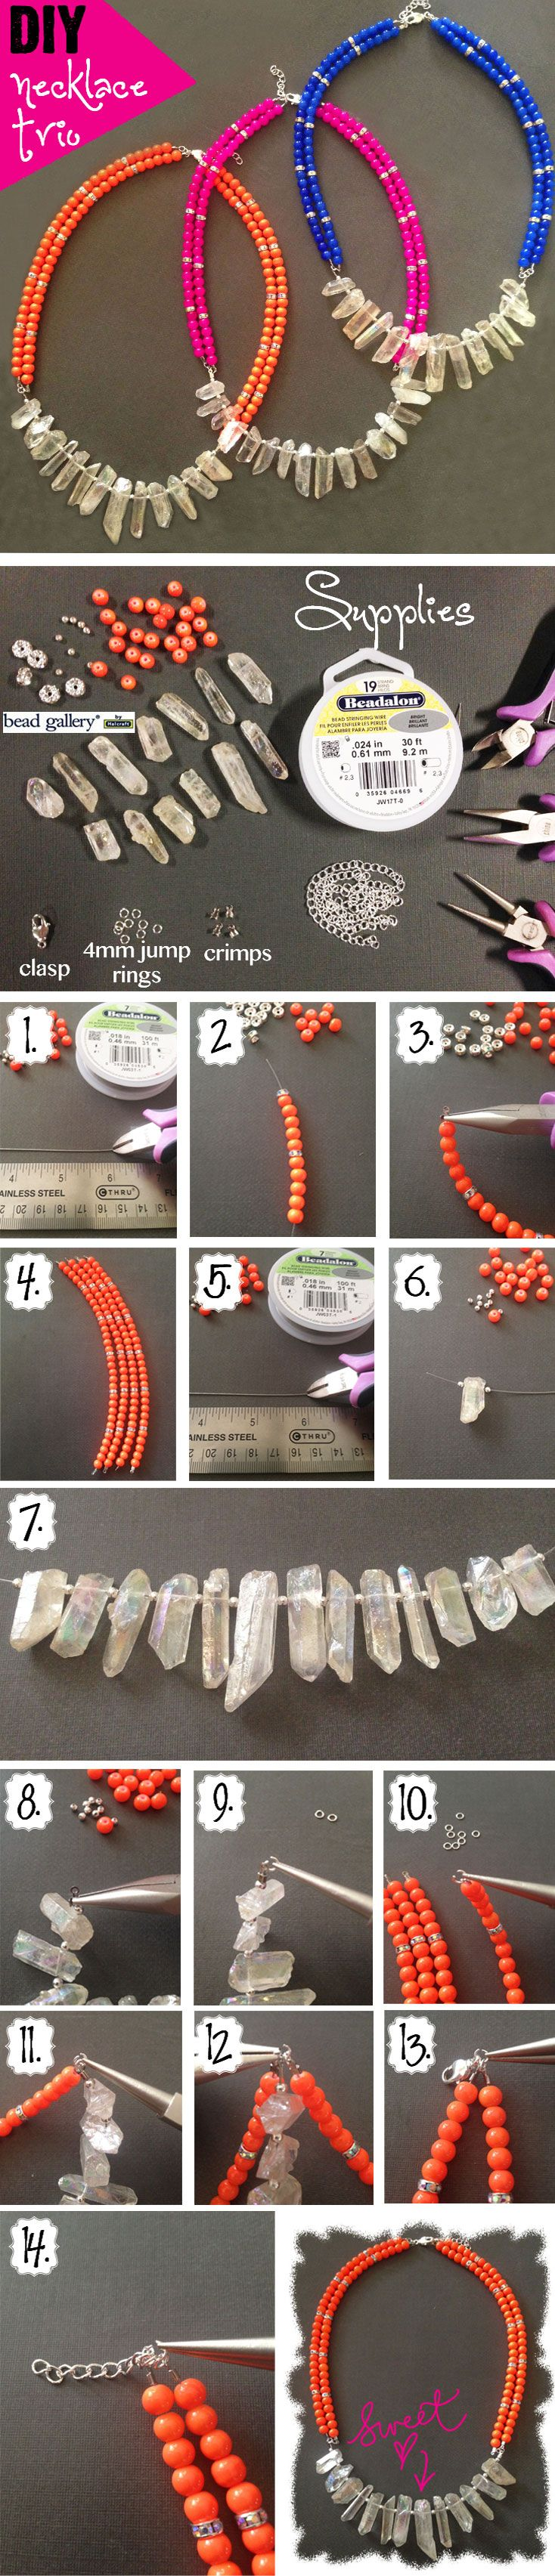 DIY Jewelry Statement Necklace Trio - easy step-by-step to create your own summer jewelry